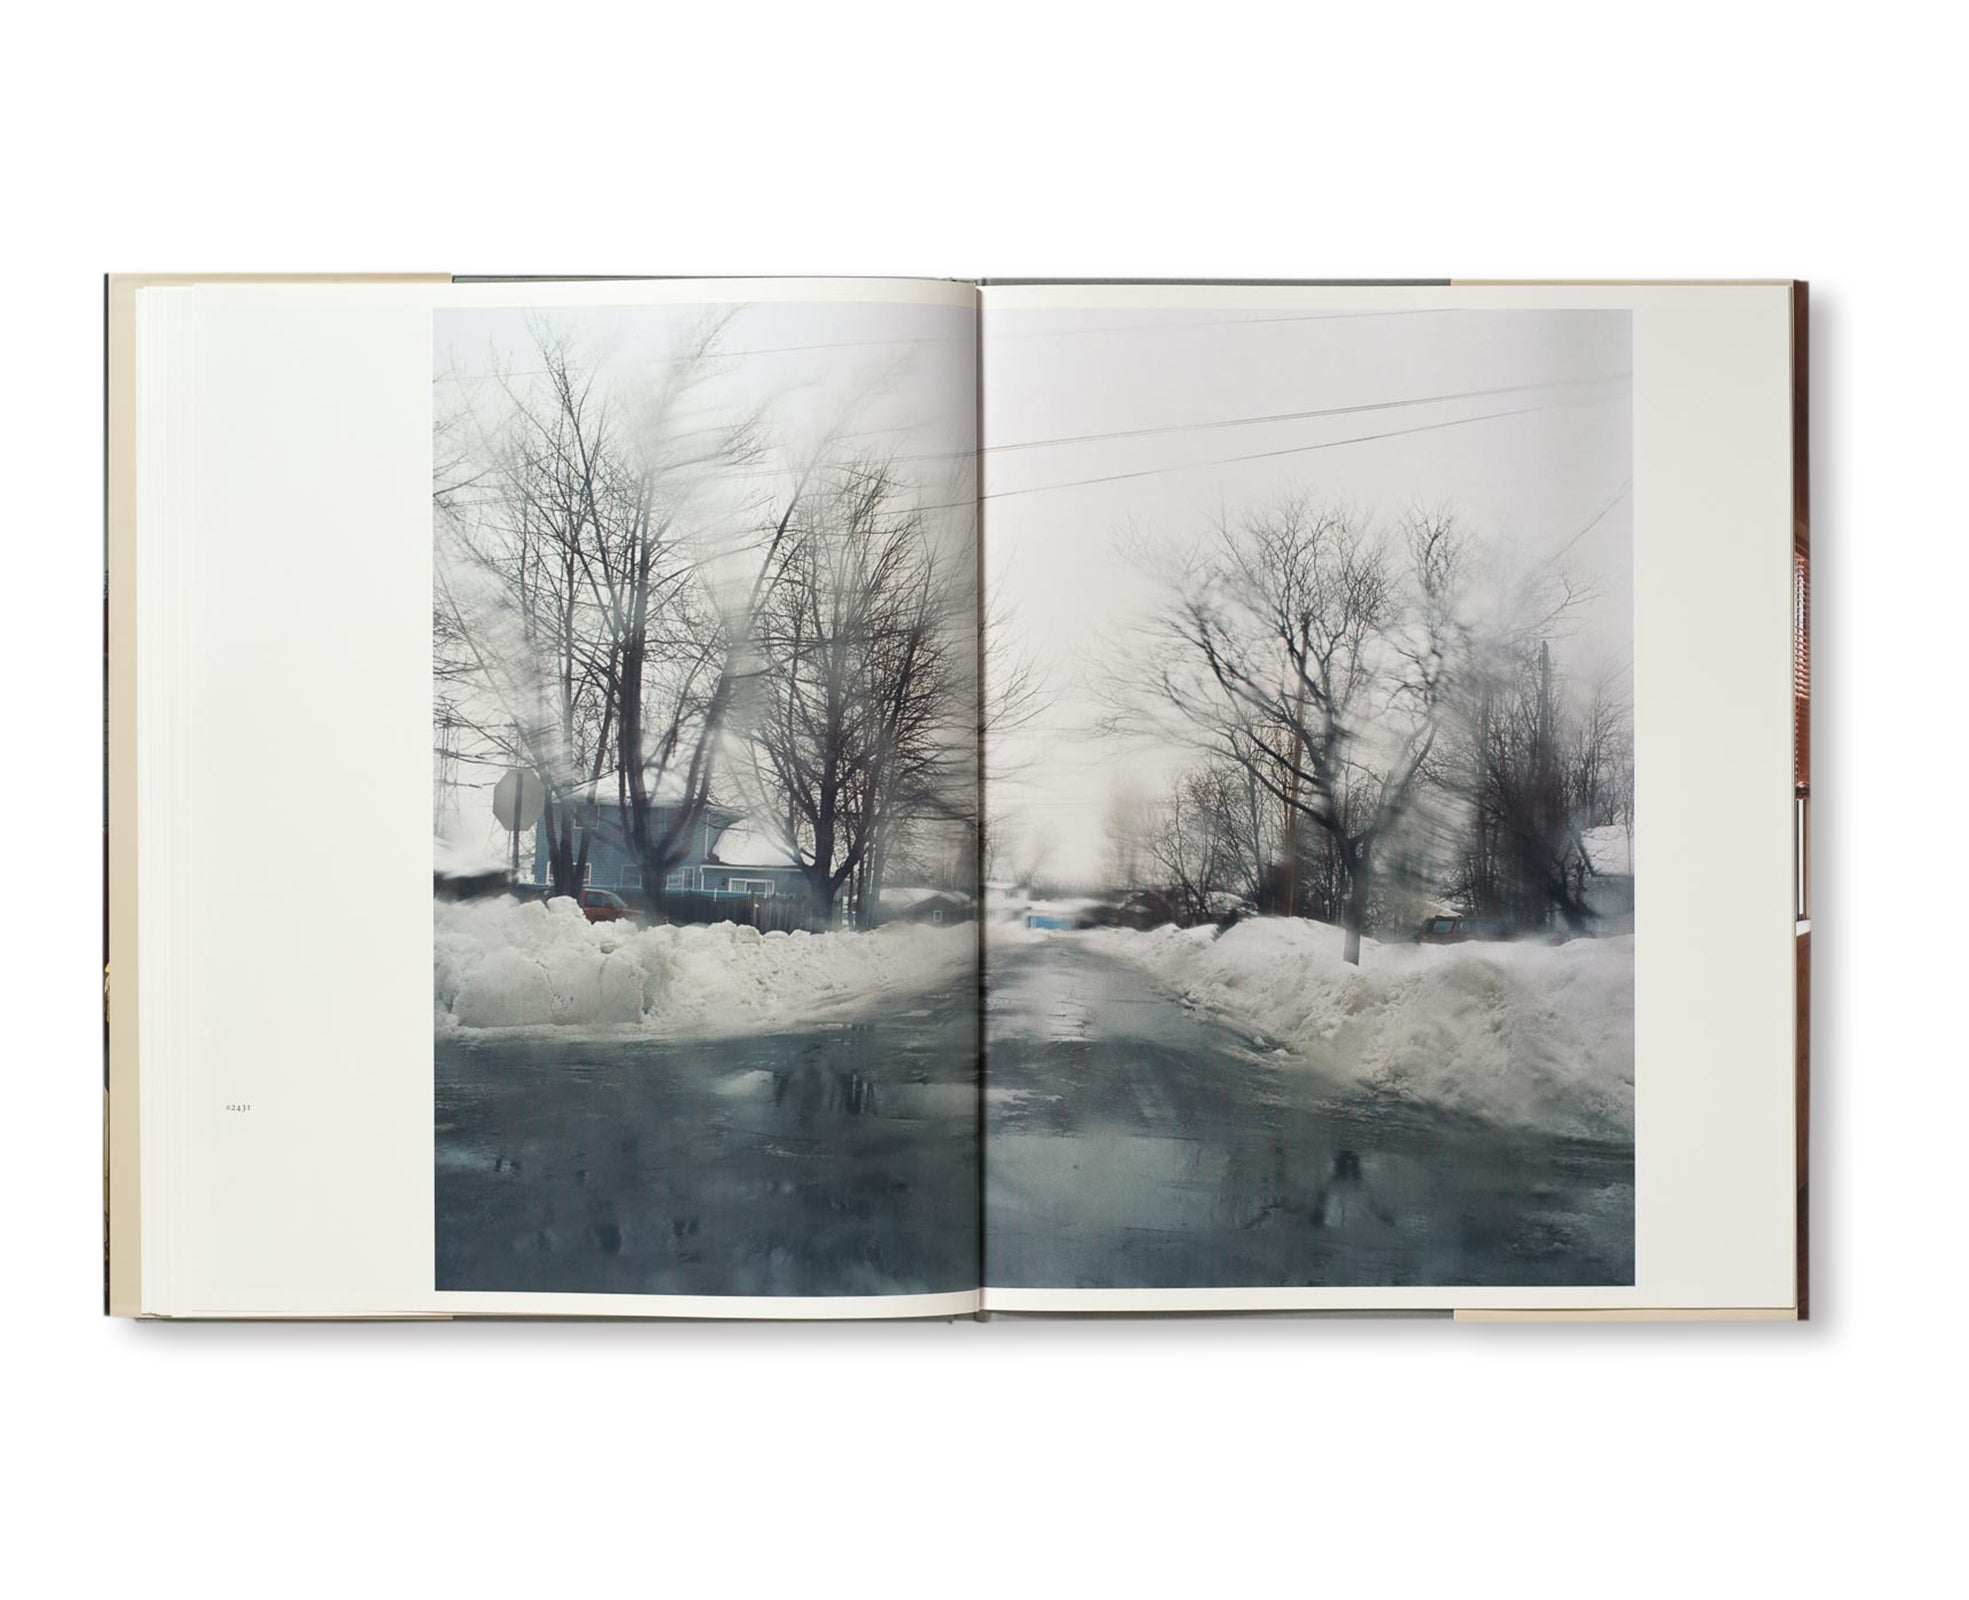 HOUSE HUNTING by Todd Hido [DELUXE EDITION]